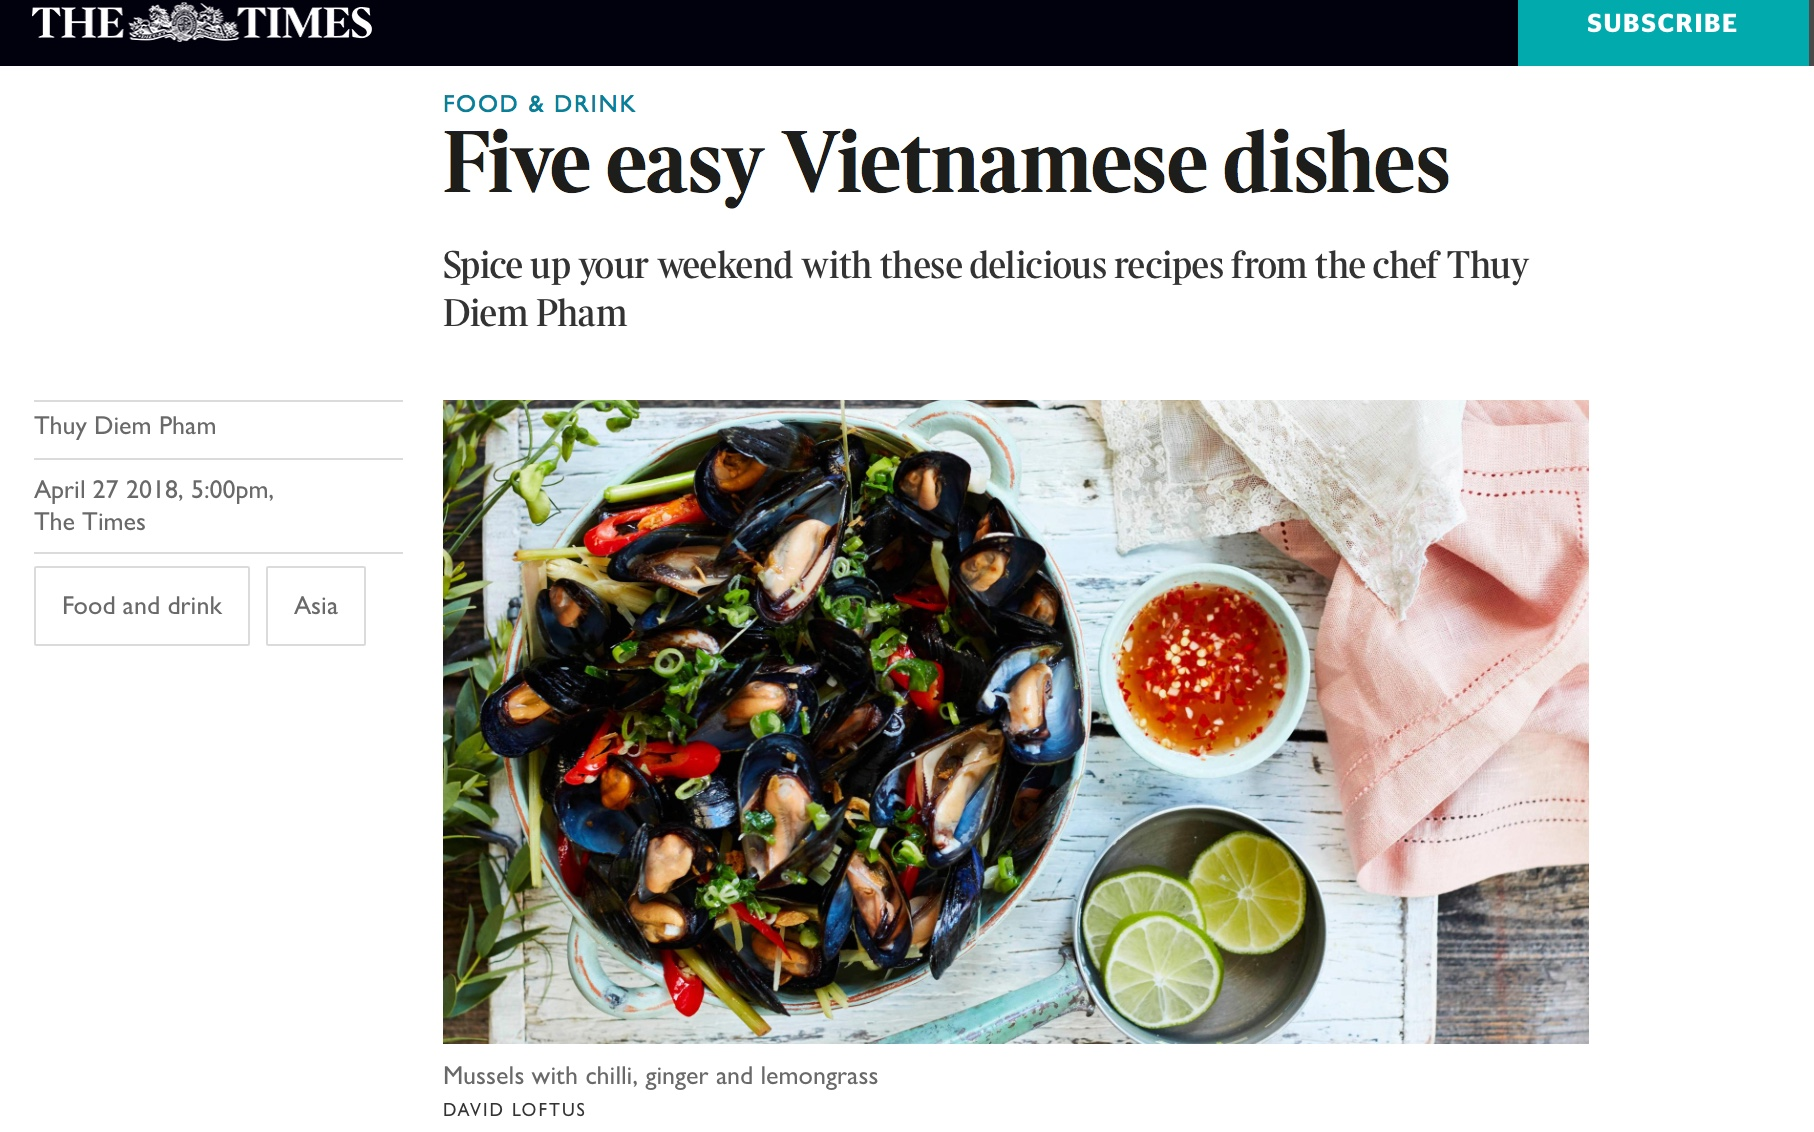 A handful of our recipes from the LVK Cookbook, now featured by The Times. online, not too late to cook up some of these yummy dishes!   https://www.thetimes.co.uk/past-six-days/2018-04-28/weekend/five-easy-vietnamese-dishes-l9tfmrtbx